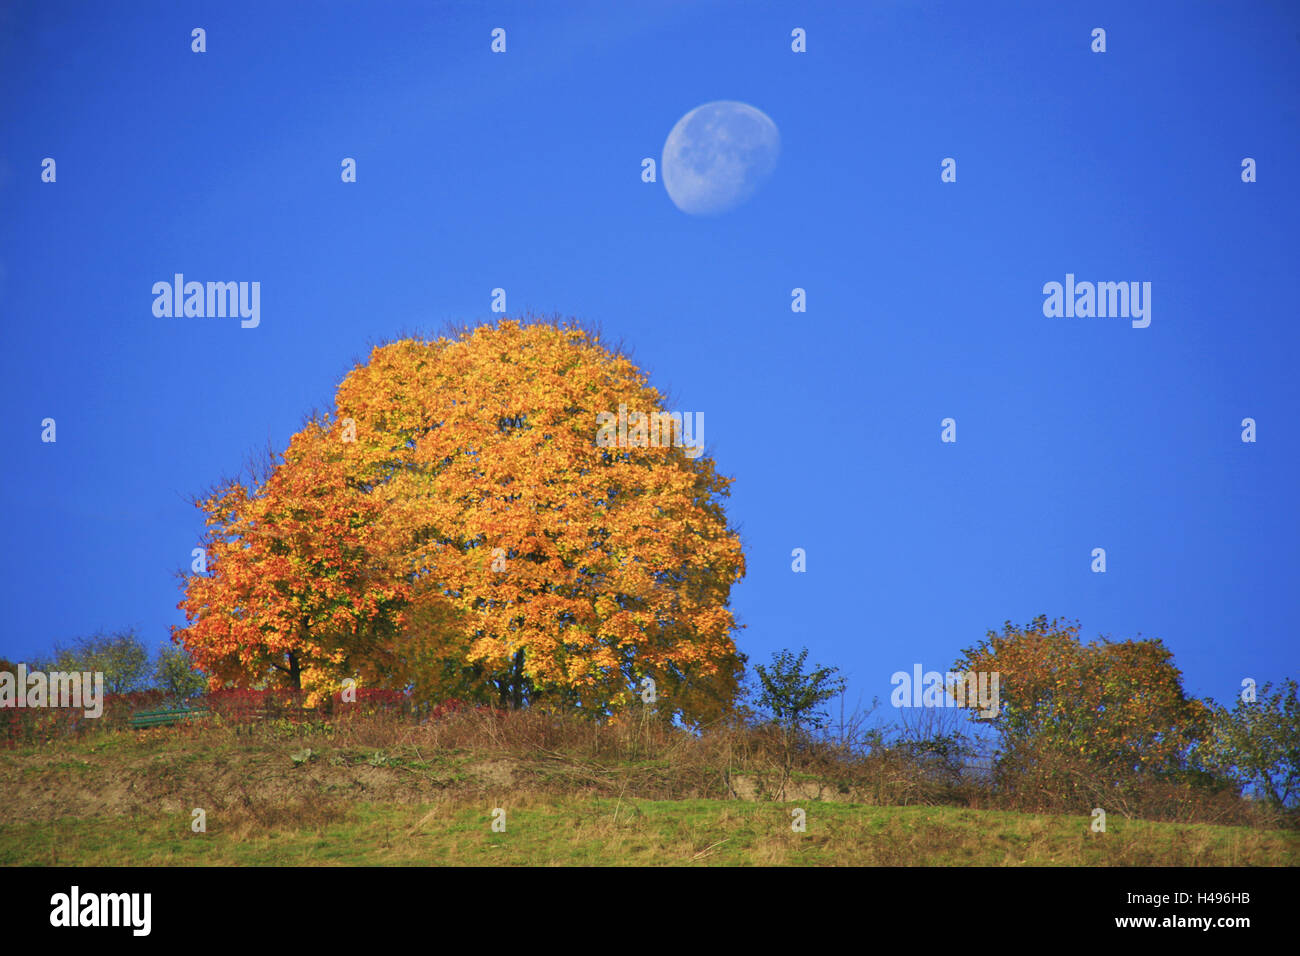 Moon about a radiant yellow tinted maple tree, - Stock Image